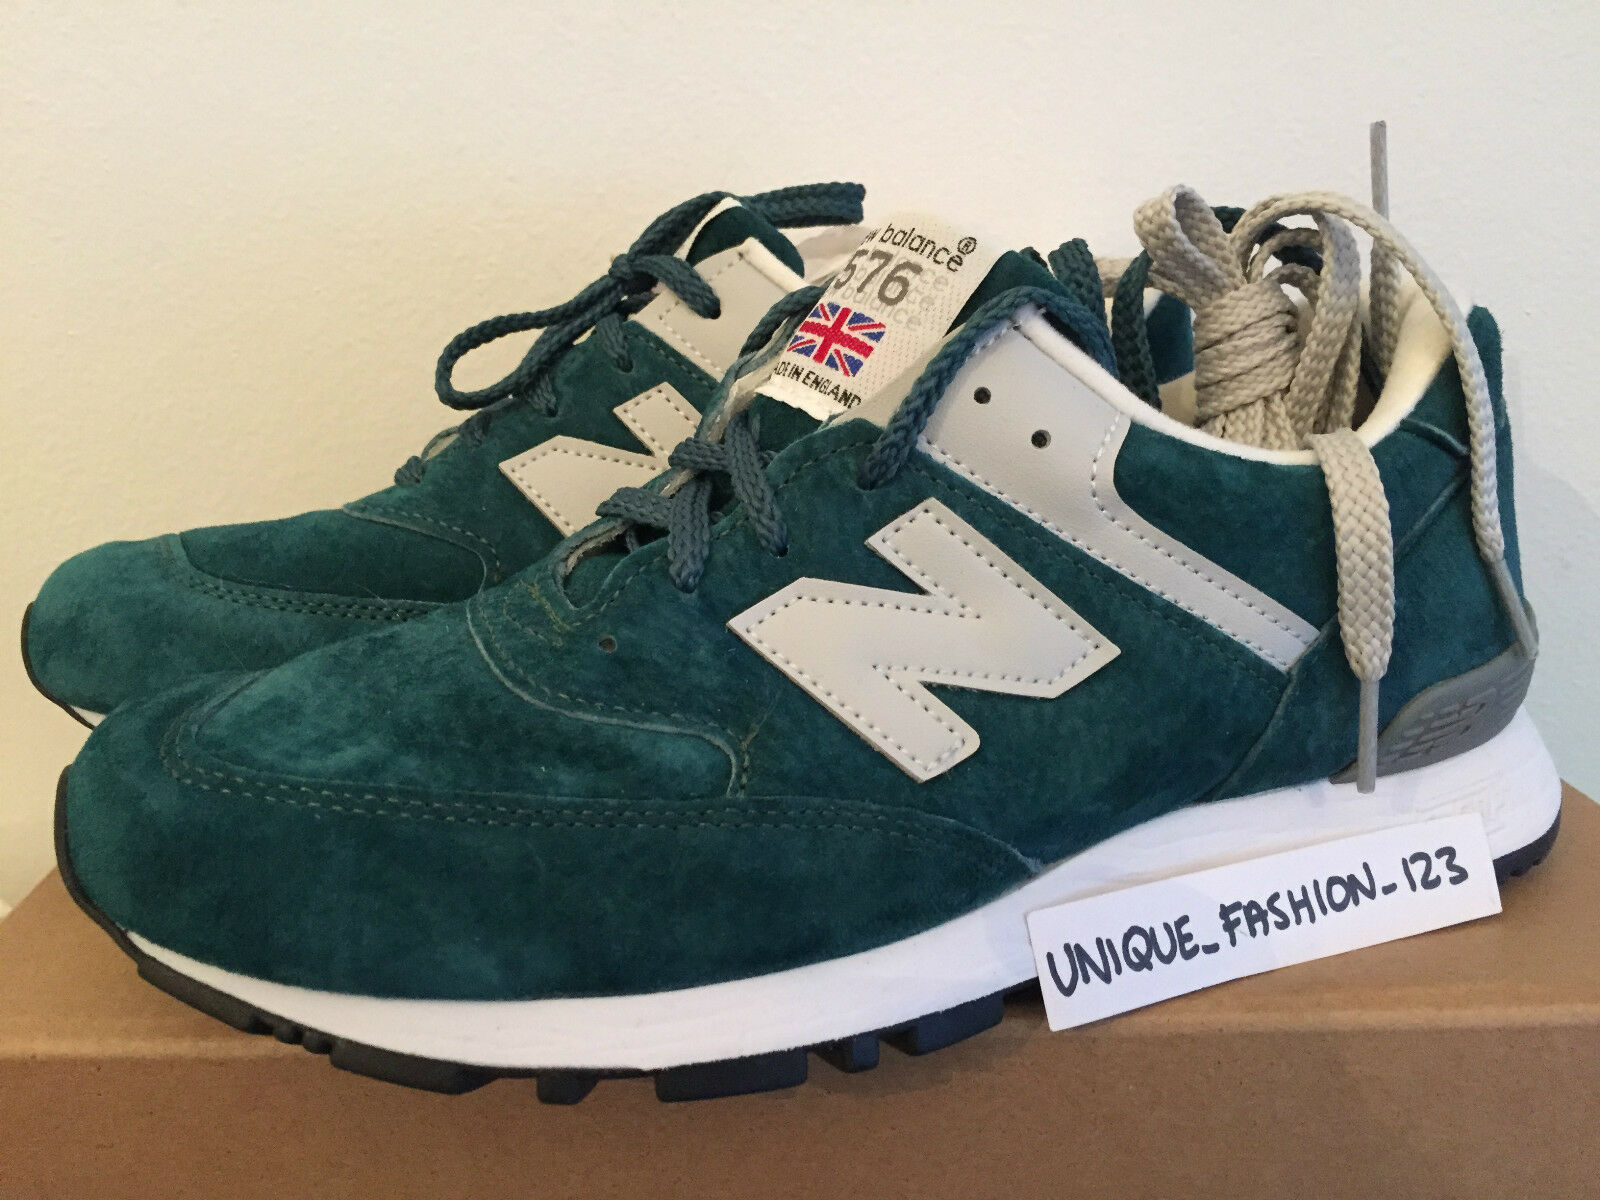 NEW Balance 576 PTG US England 9.5 7 Made in England US color foglia di tè verde bianco W576PTG 557a39